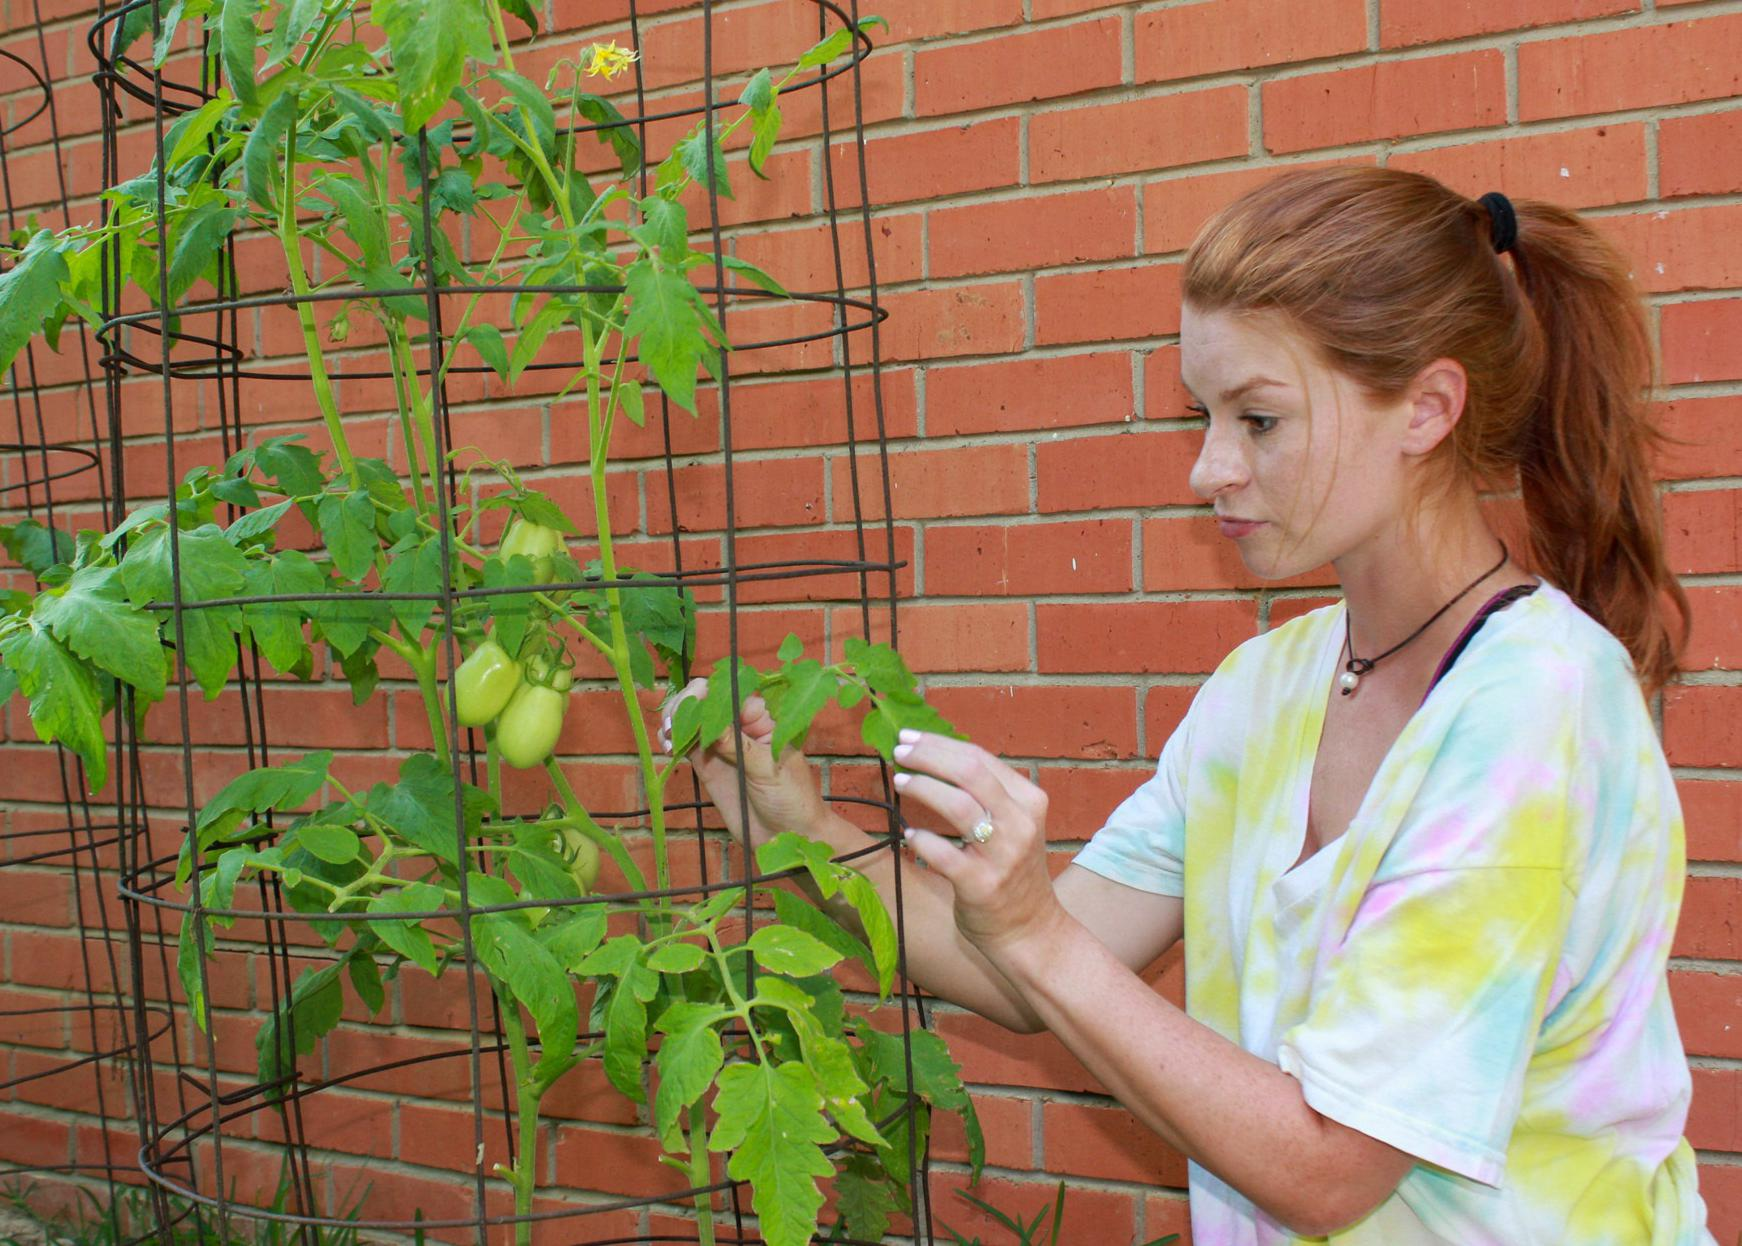 A woman handles a tomato plant growing in a wire frame.